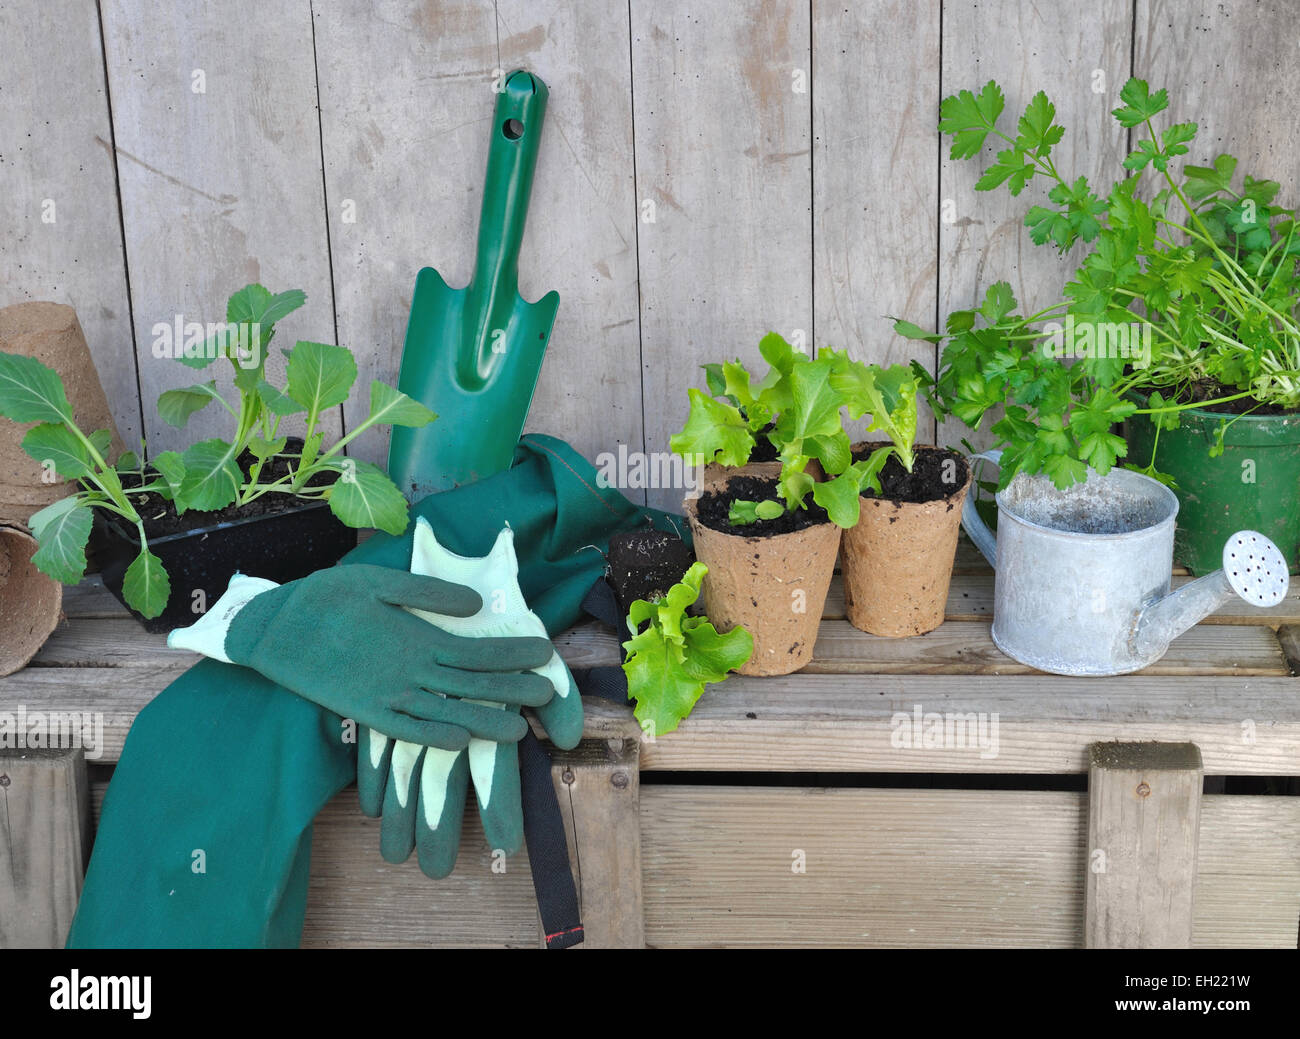 Vegetable Plants And Gardening Accessories Placed On Wooden Plank   Stock  Image